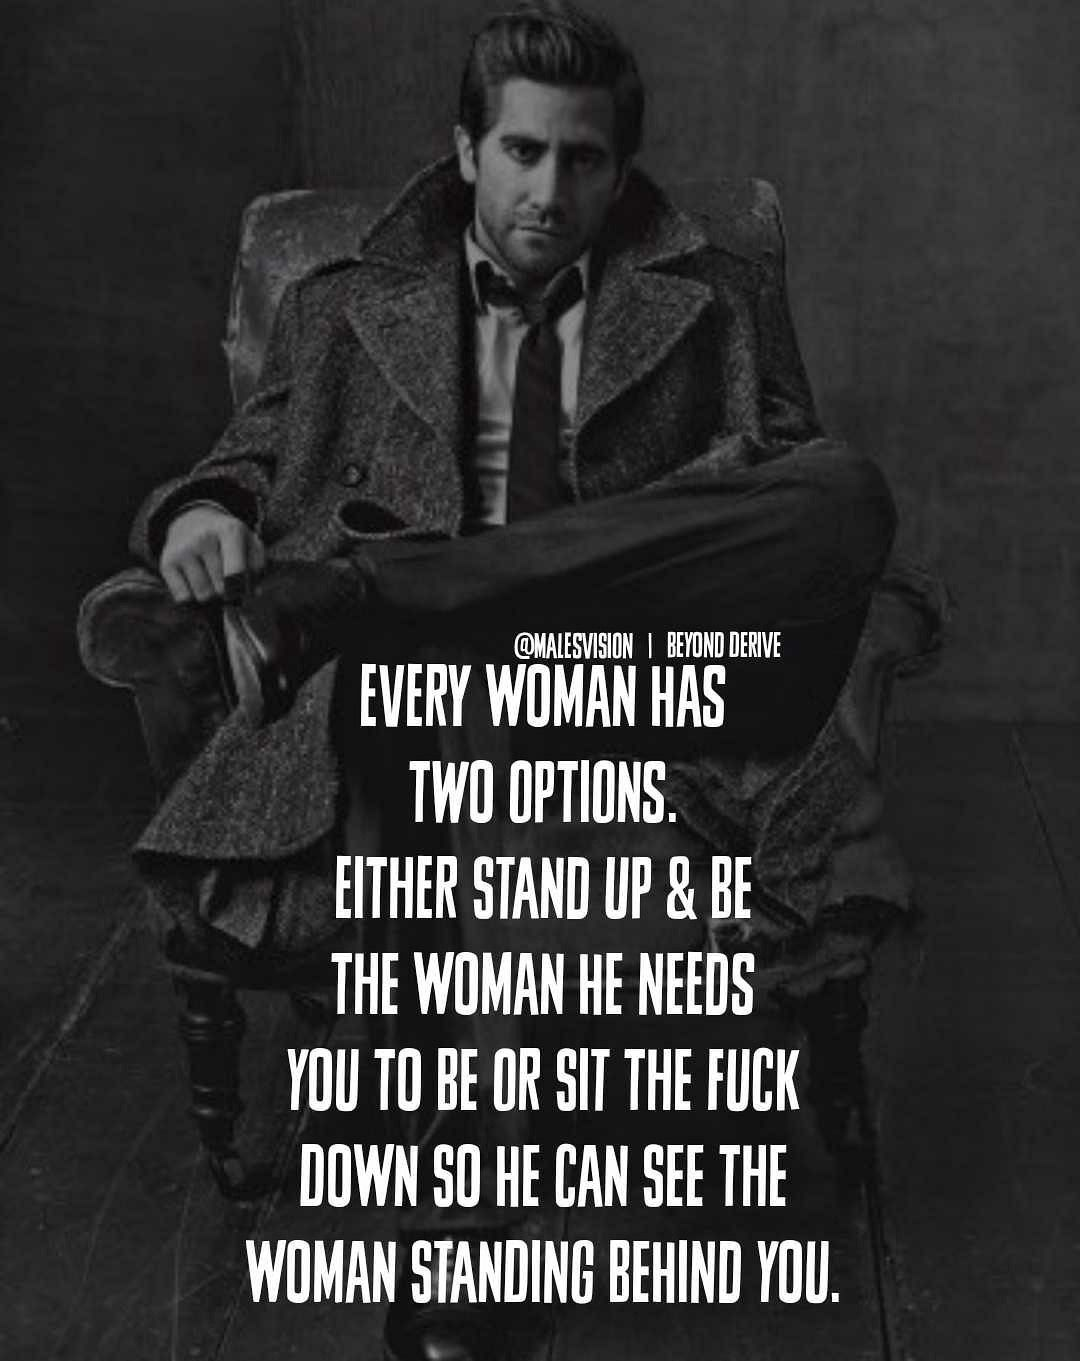 Malesvision For More Malesvision Motivation Inspiration Dailyquotes Quotes Life Real Men Quotes Badass Quotes Man Up Quotes